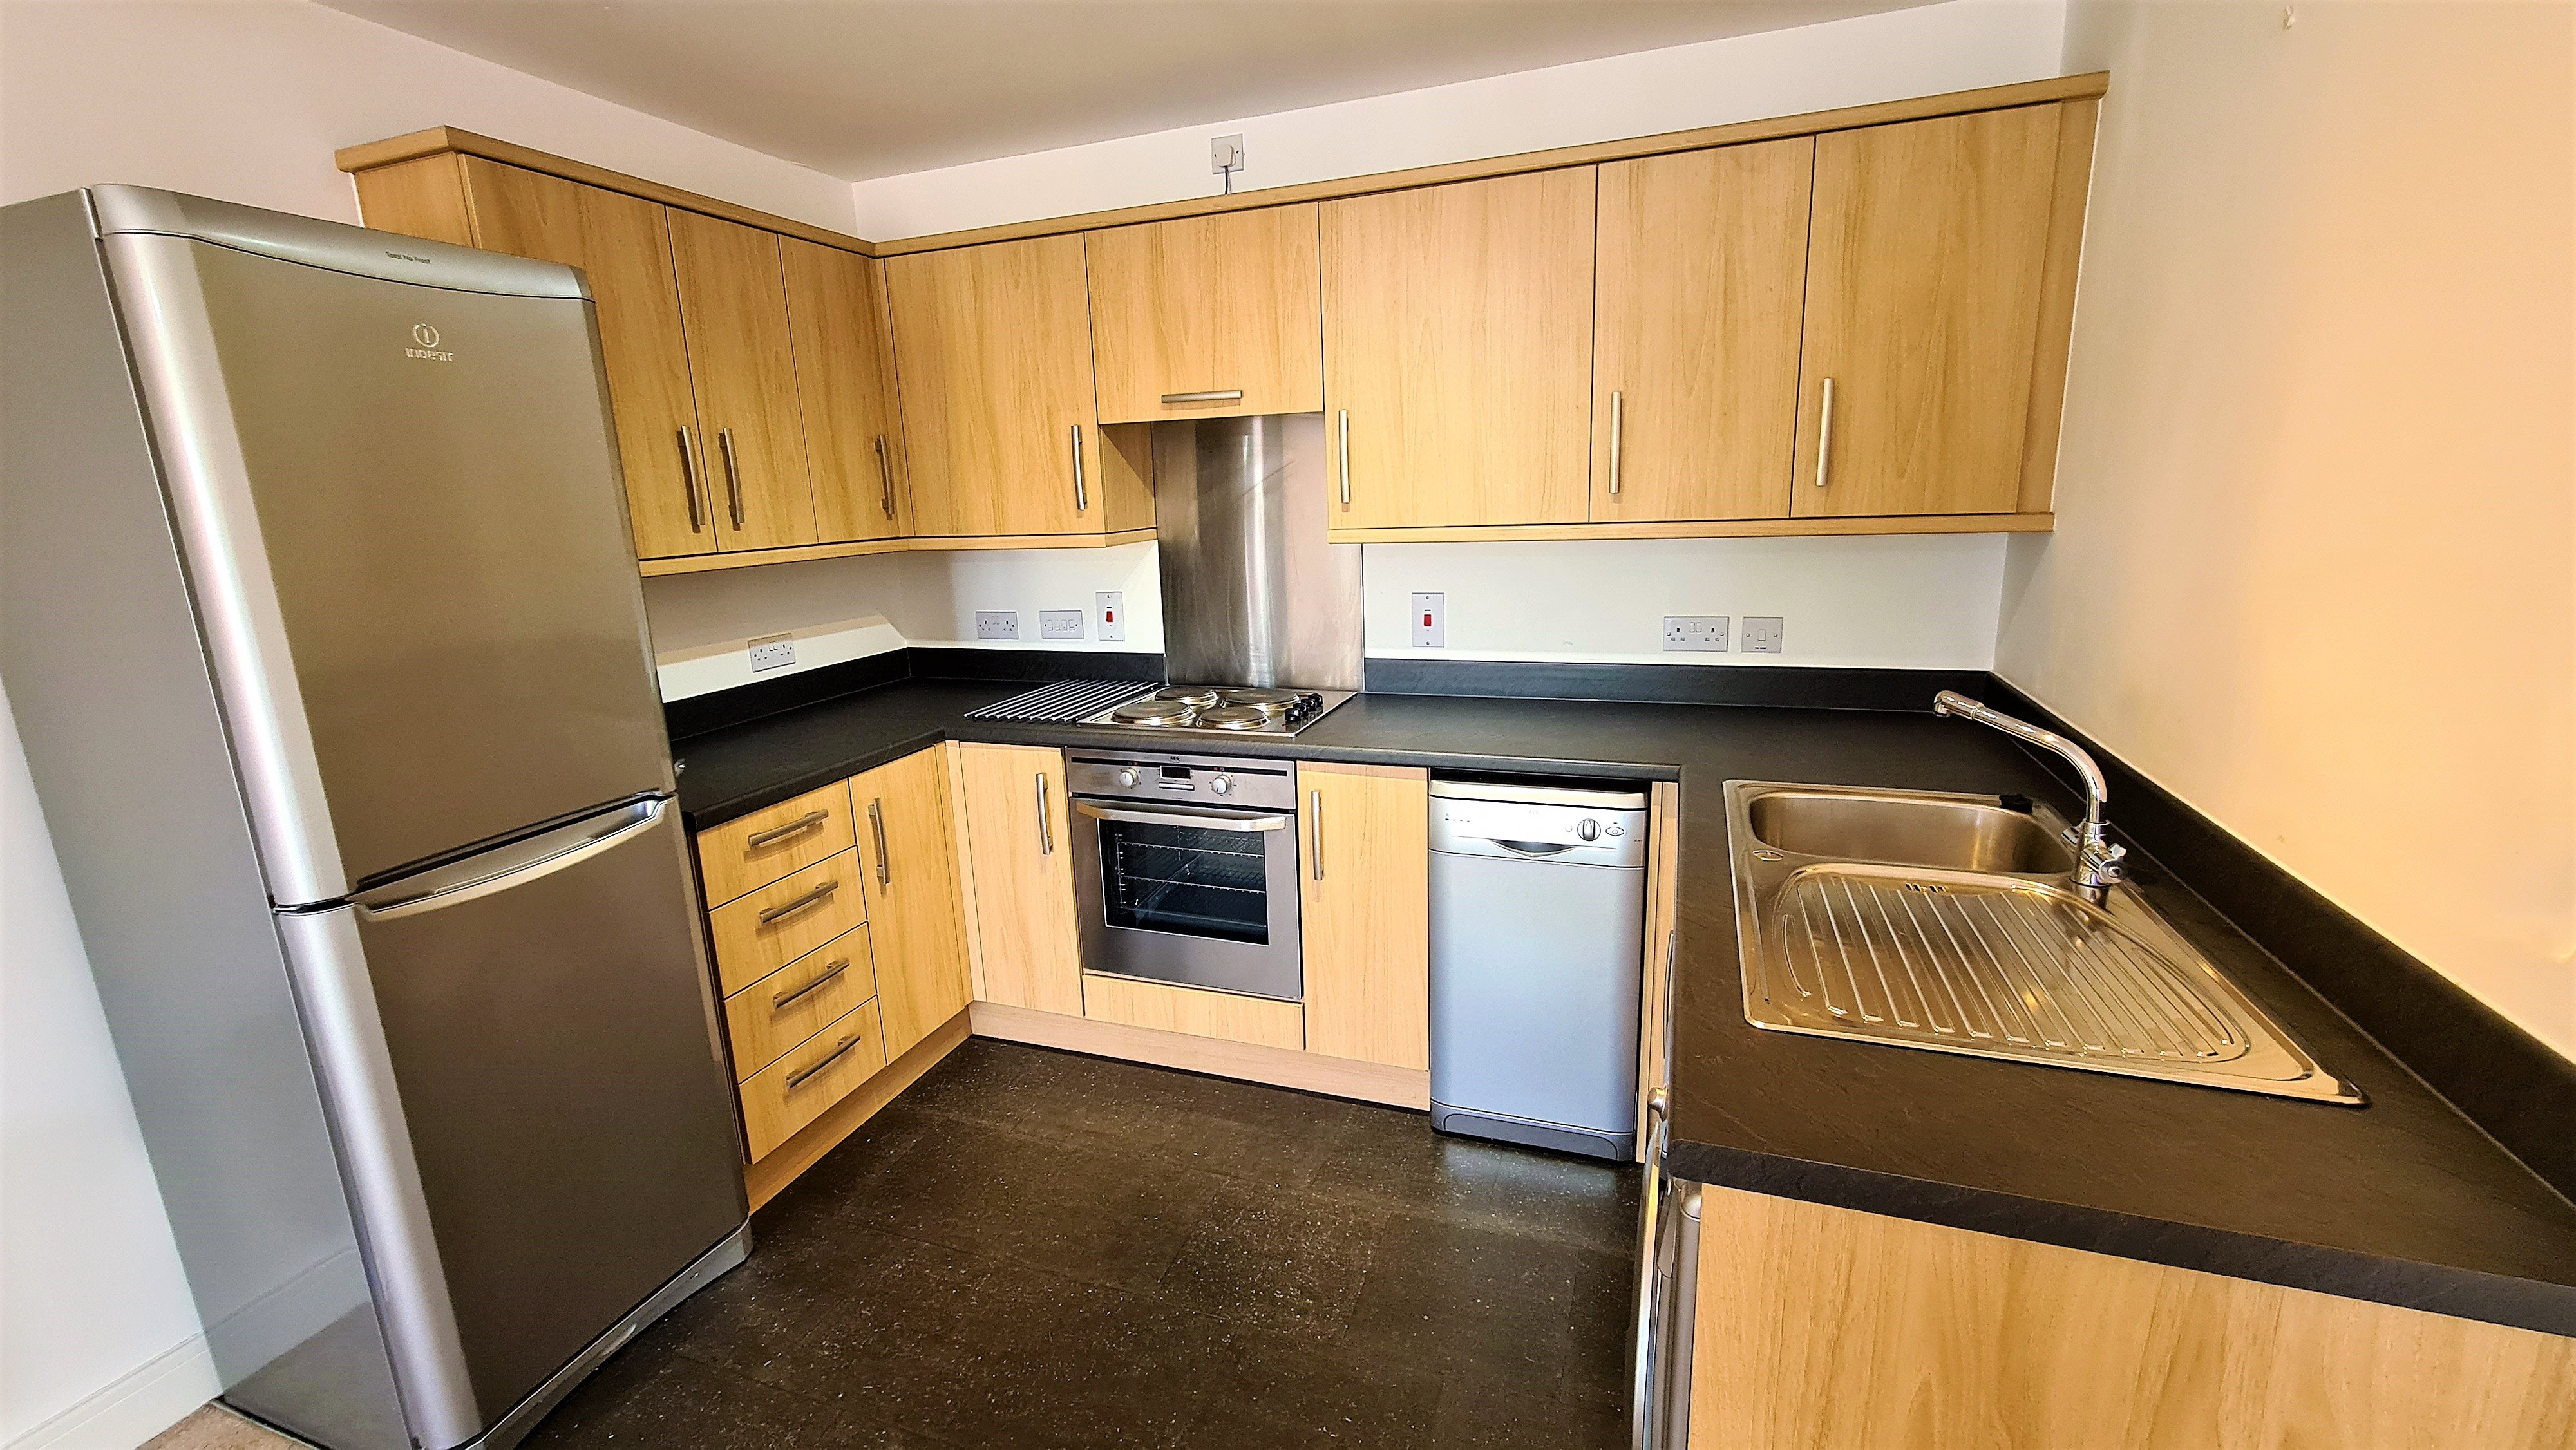 1 bed flat for sale in Riverview, Wickord, SS12